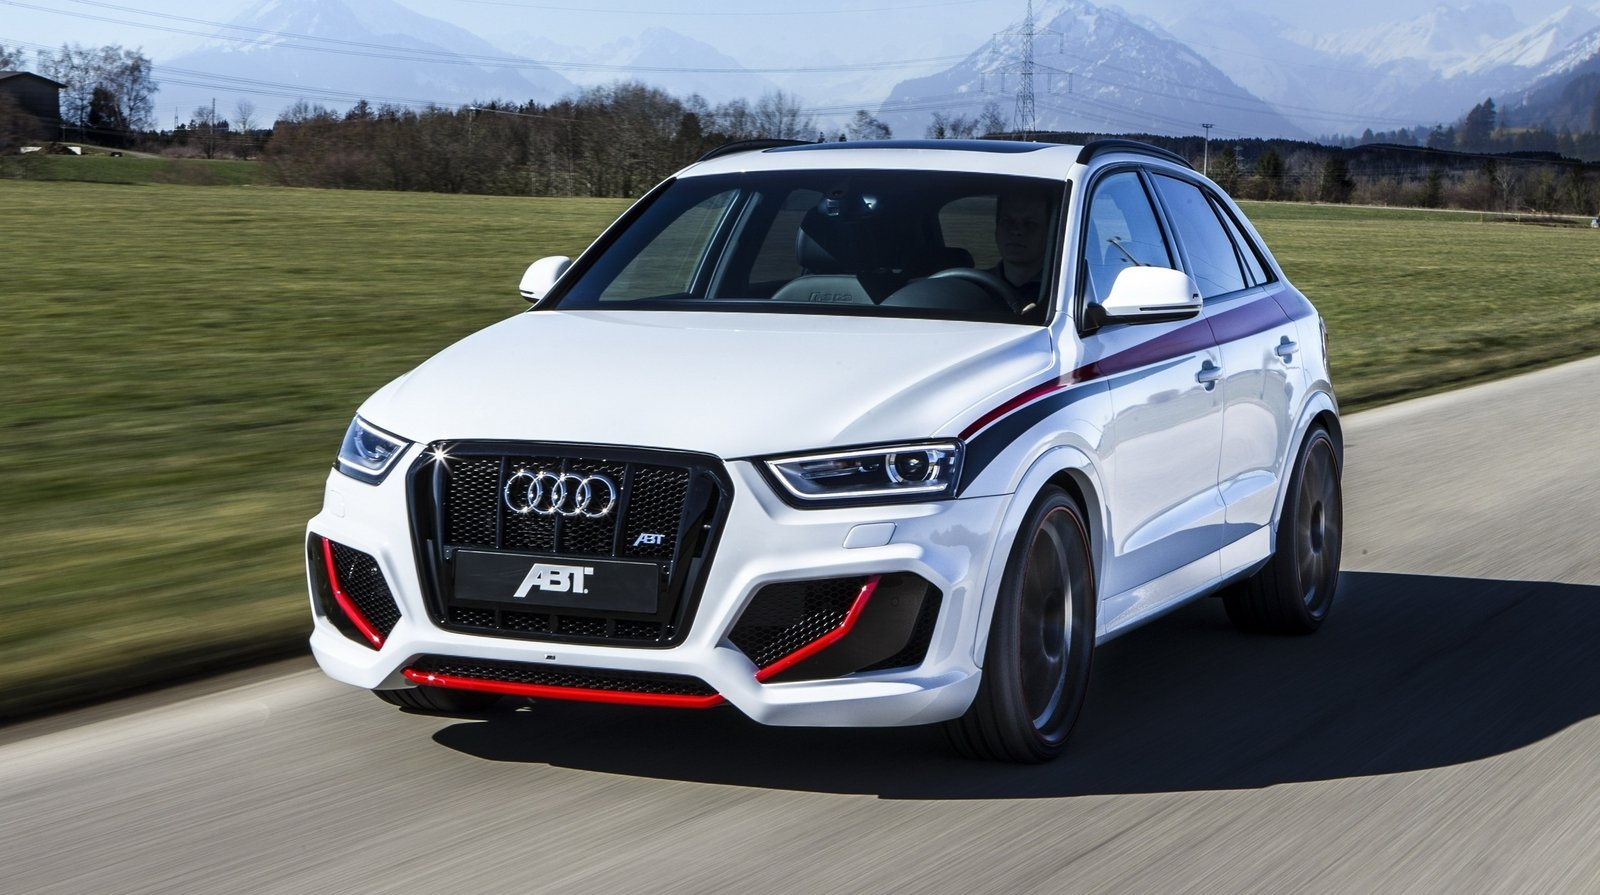 2014 Audi RS Q3 By ABT Sportsline  Top Speed